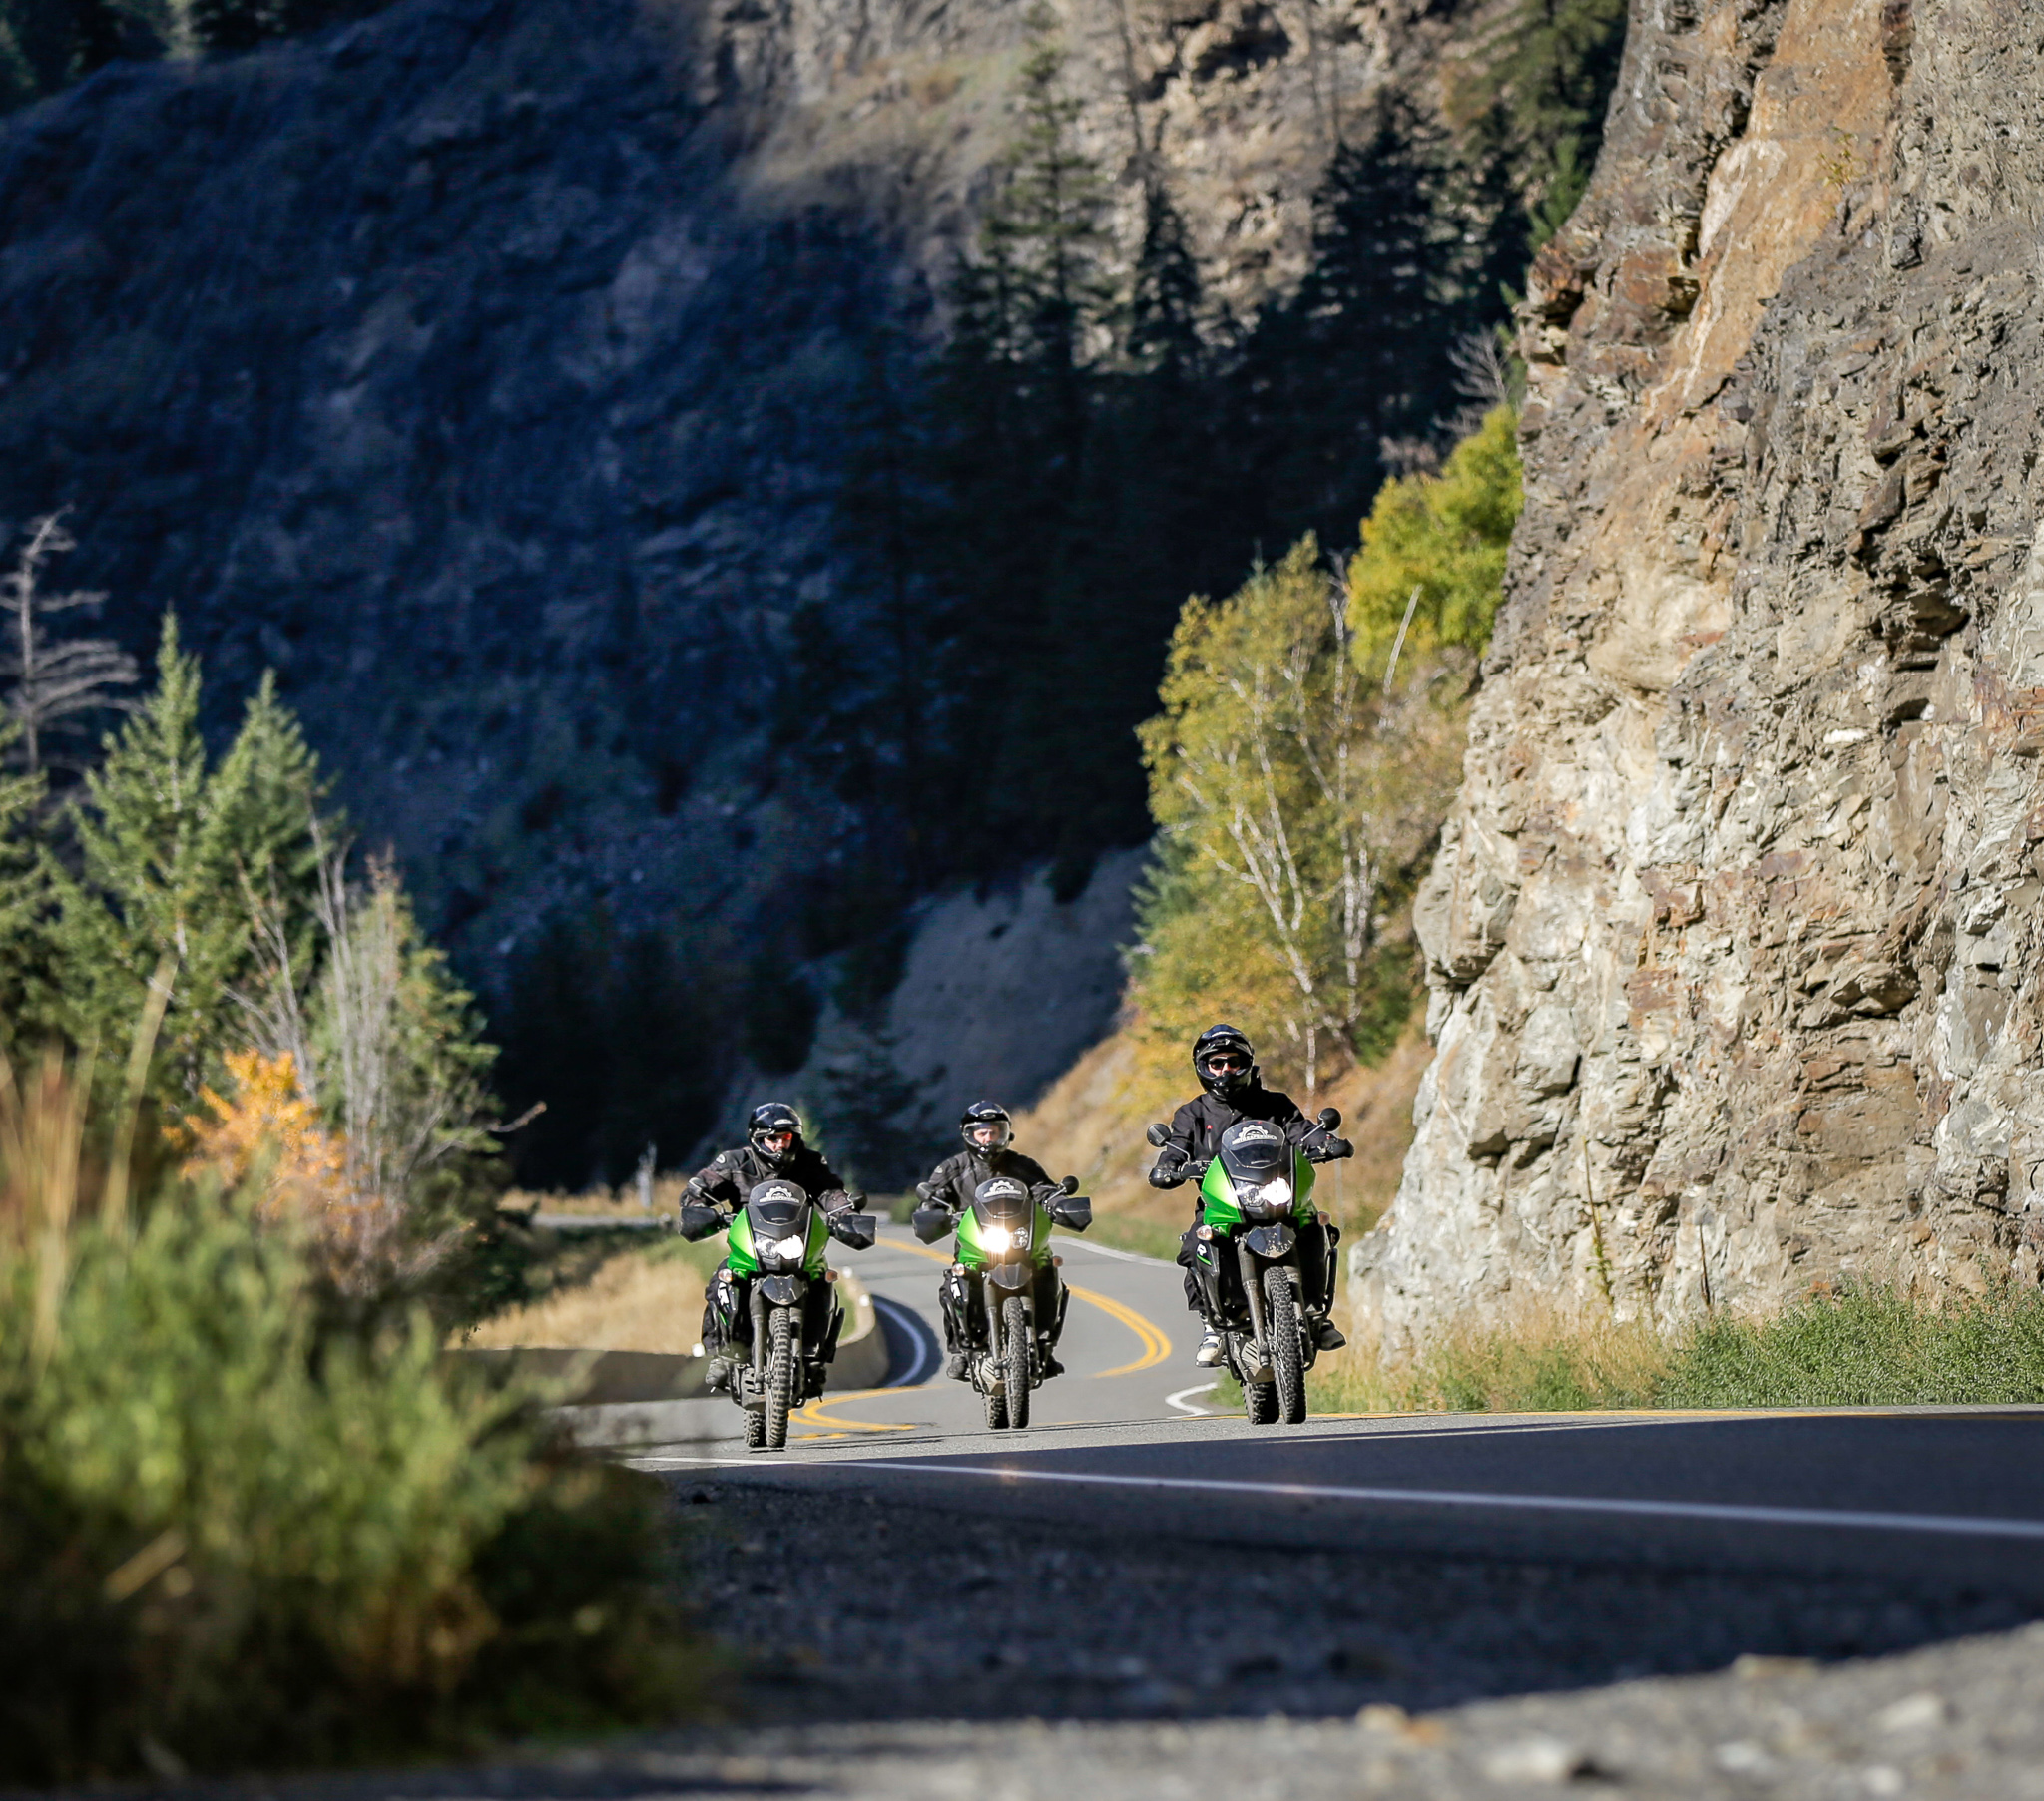 Riding the canyons on the Duffey Lake Road